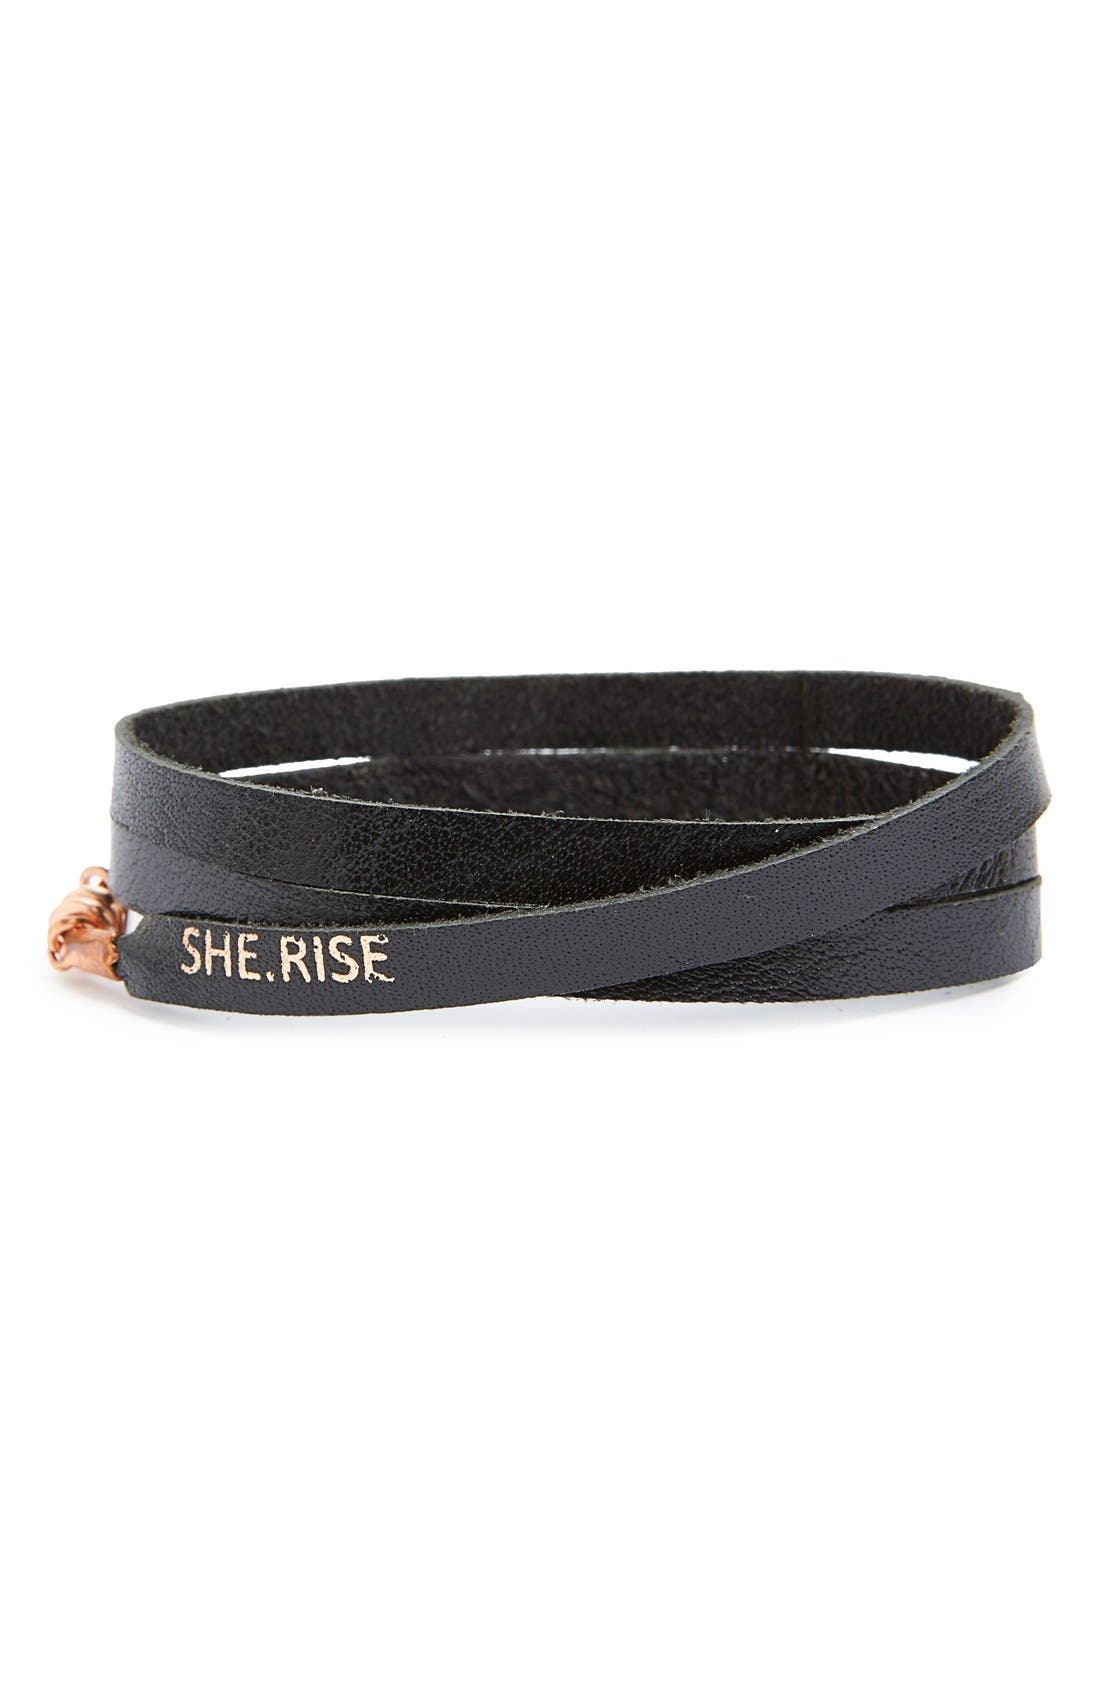 Alternate Image 1 Selected - She.Rise Triple Wrap Bracelet